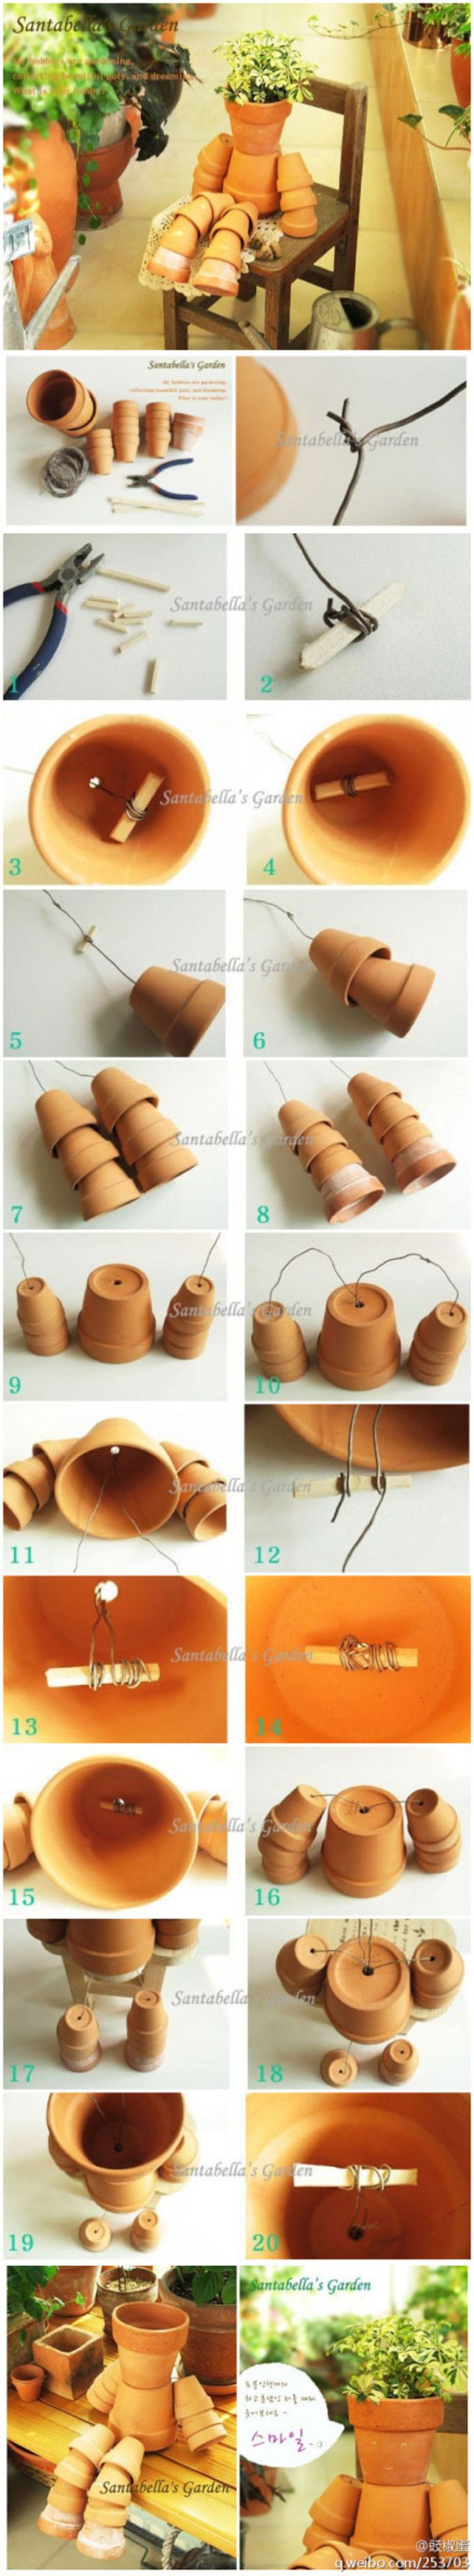 64 Best Images About Clay Pot Design On Pinterest Diy